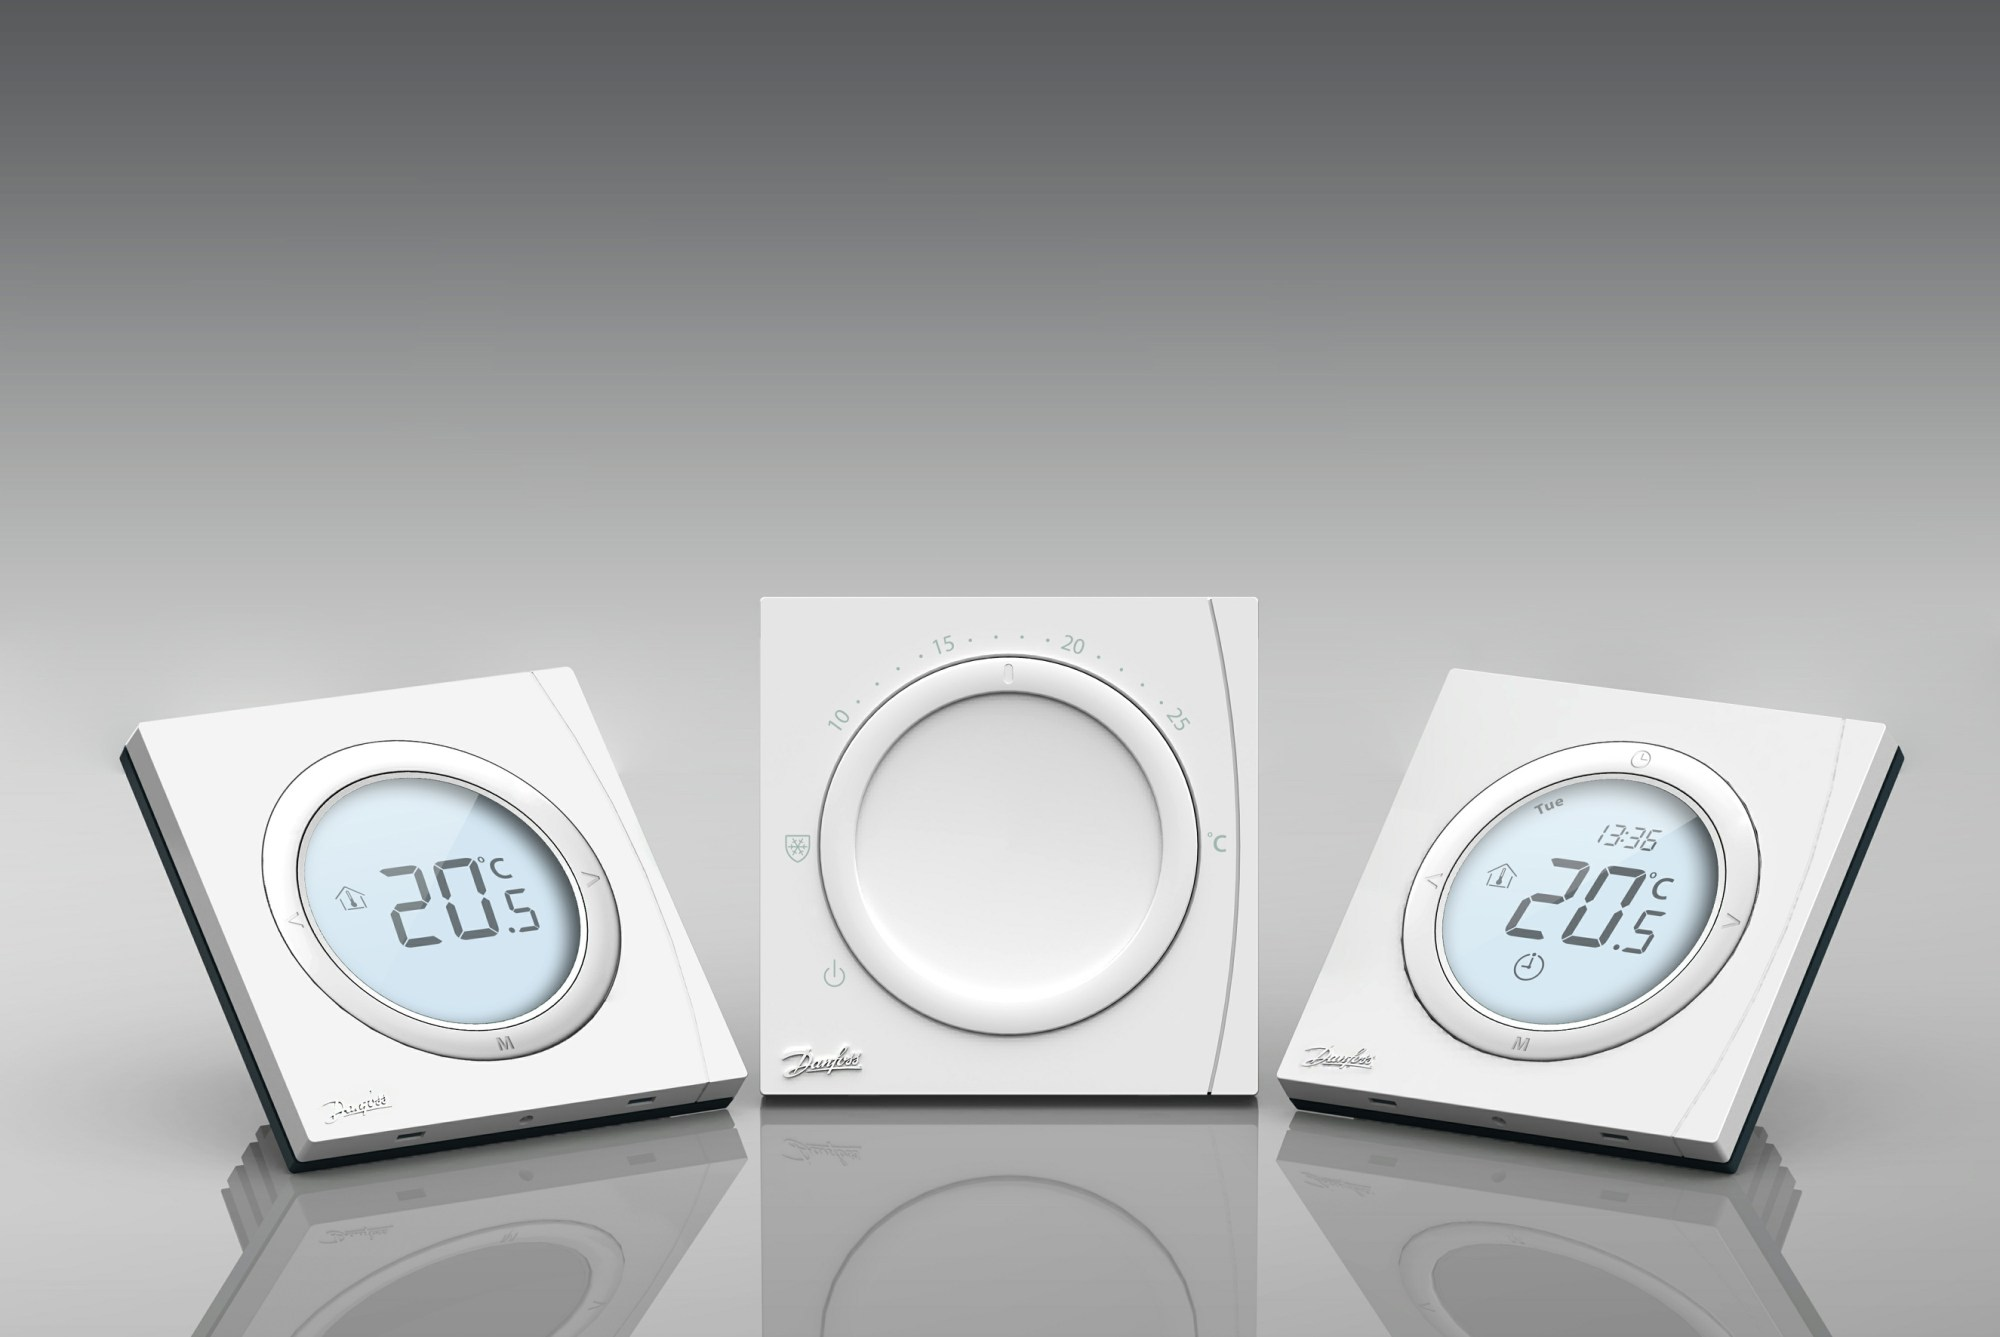 hight resolution of danfoss launches energy saving room thermostats for underfloor